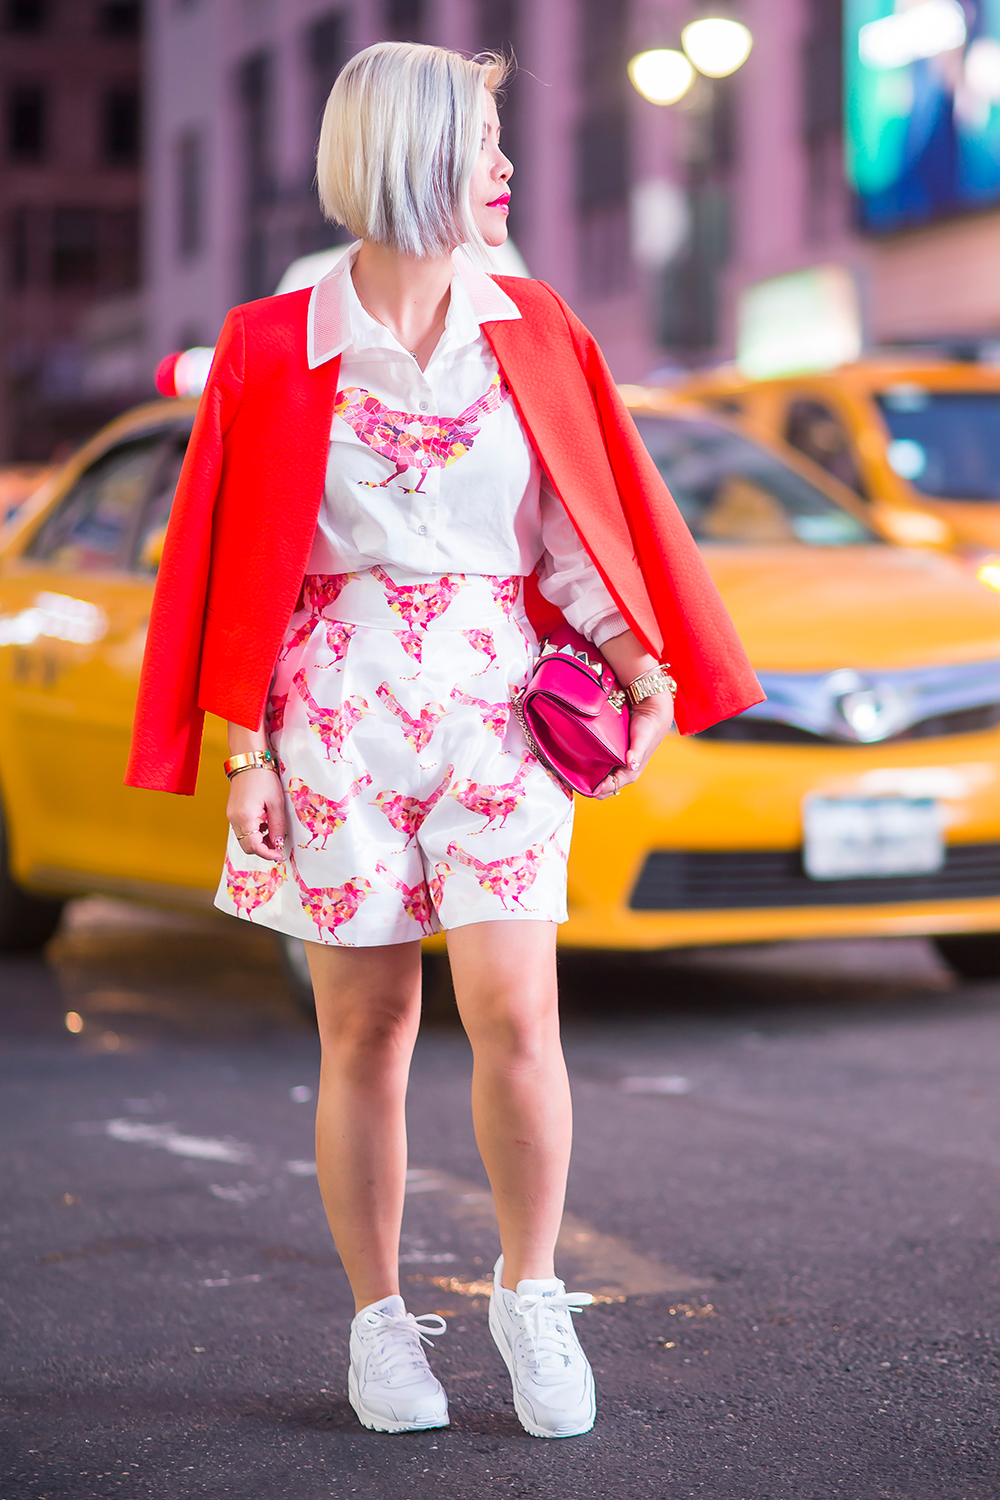 New York Fashion Week 2015- Crystal Phuong- Street style